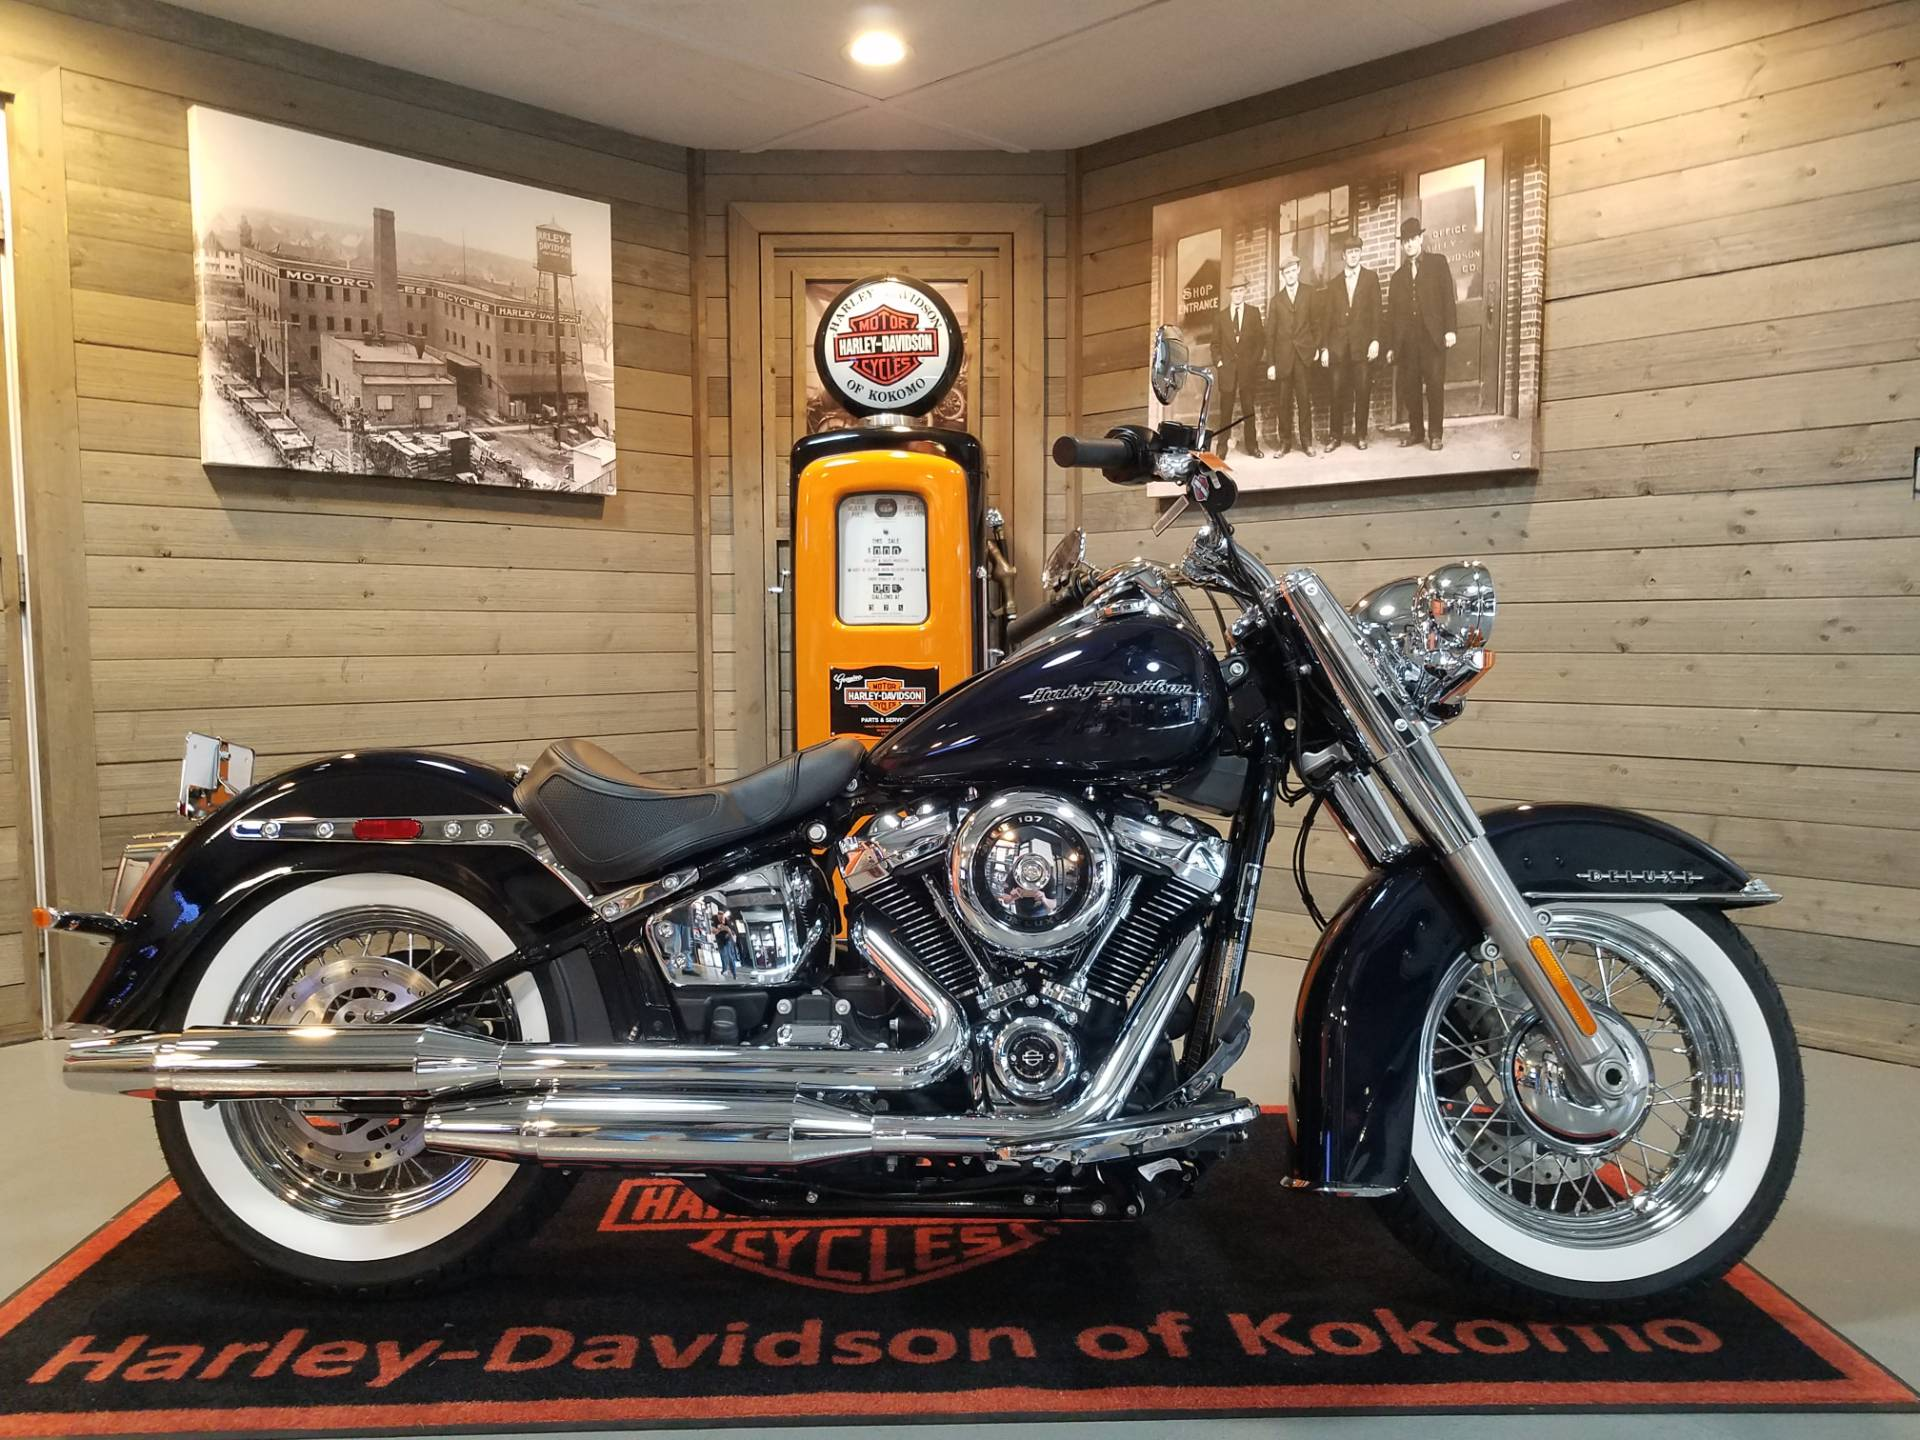 2020 Harley-Davidson Deluxe in Kokomo, Indiana - Photo 1